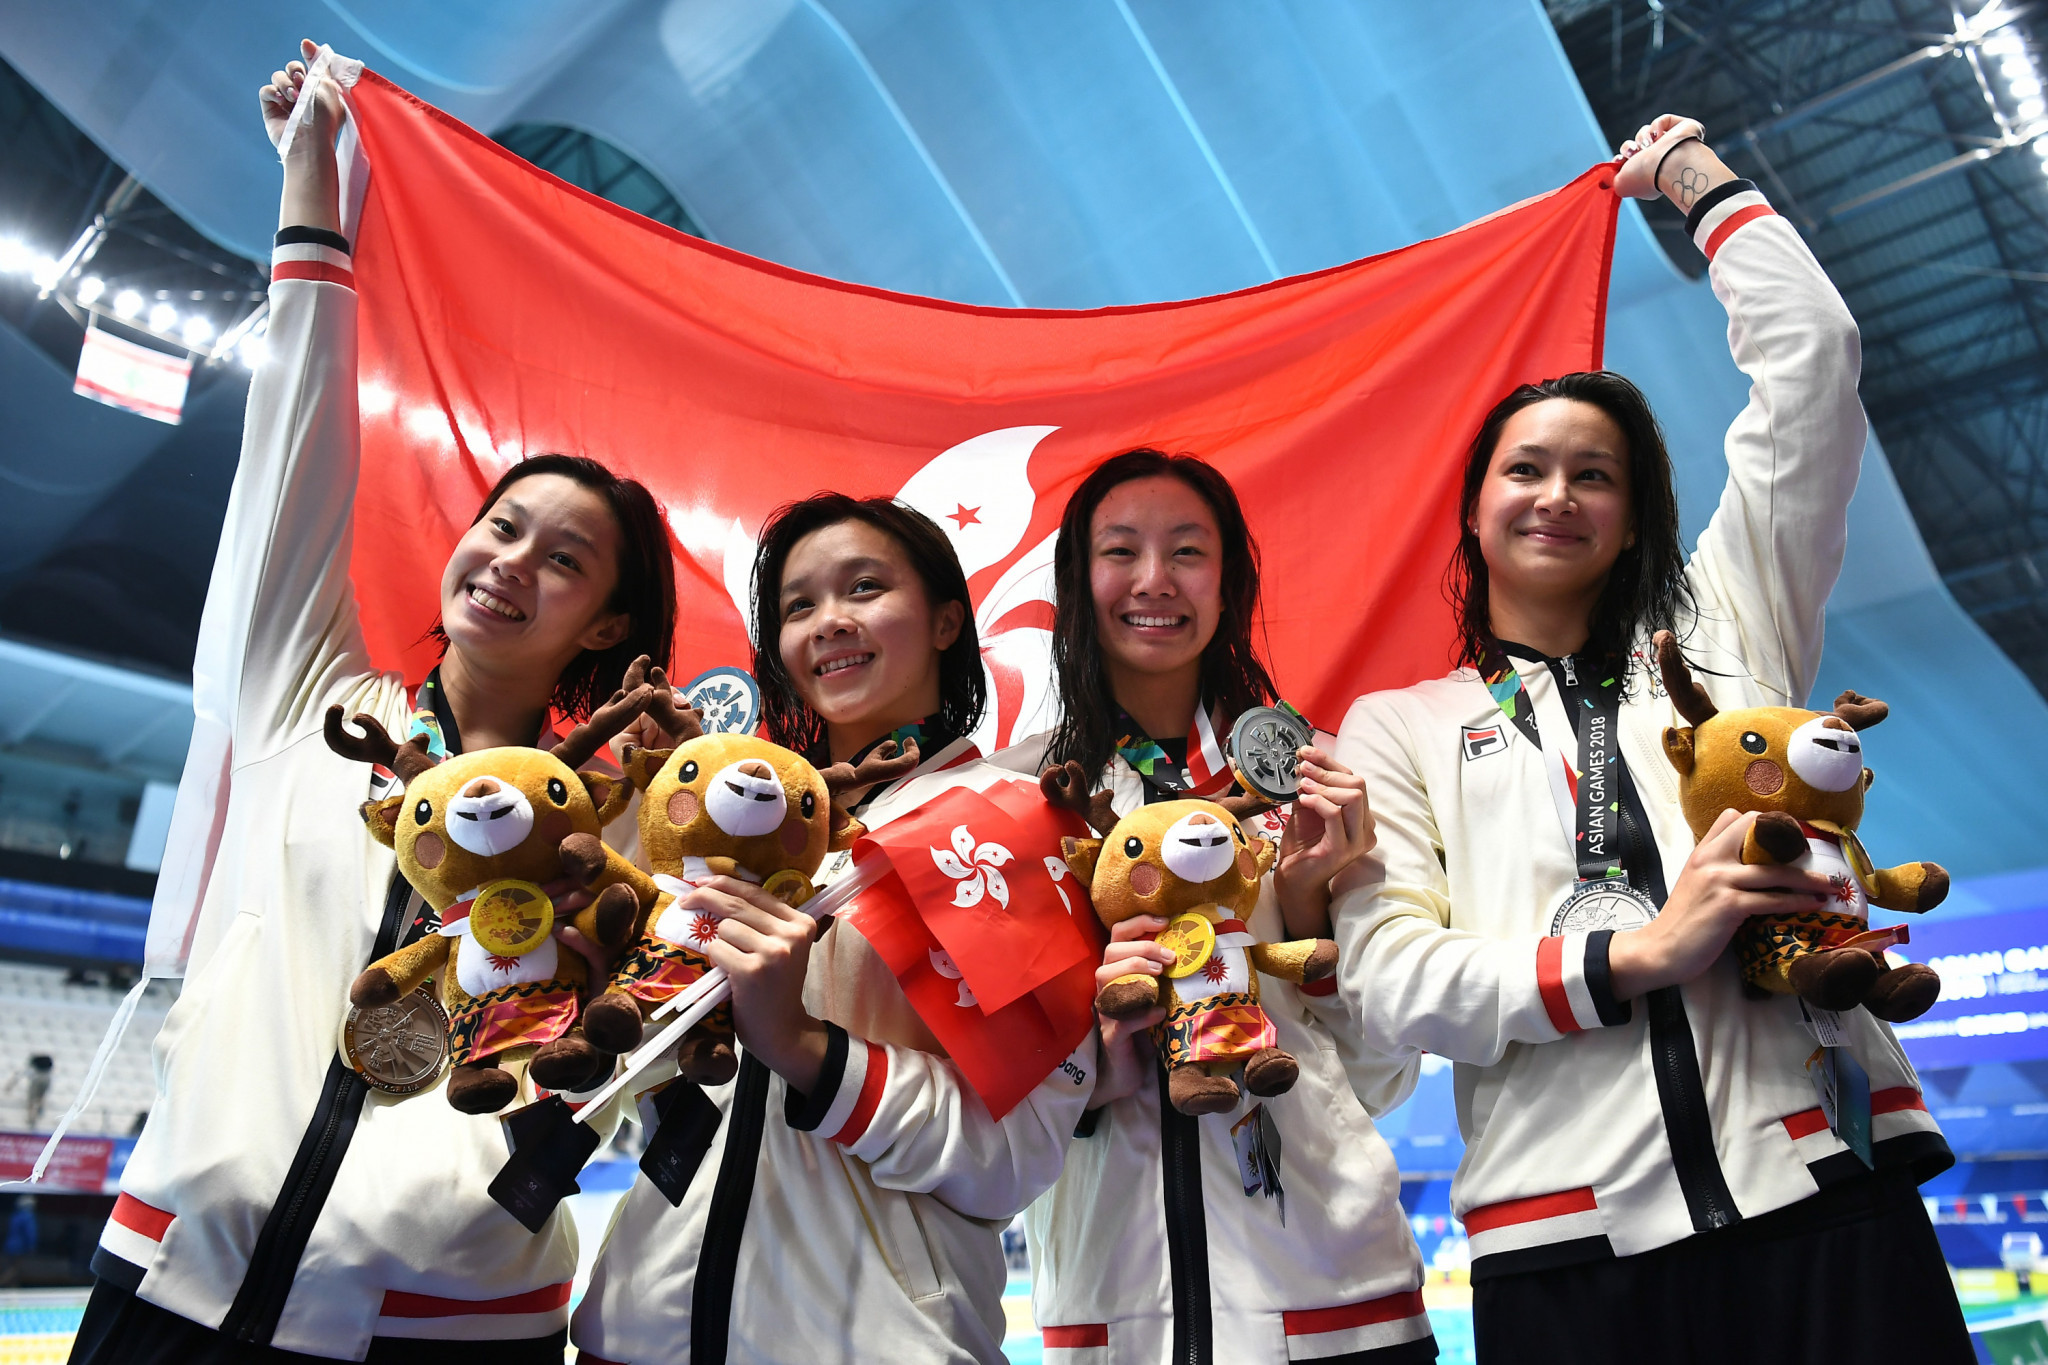 Hong Kong earned silver in the women's 4x100 metre medley relay at the 2018 Asian Games ©Getty Images